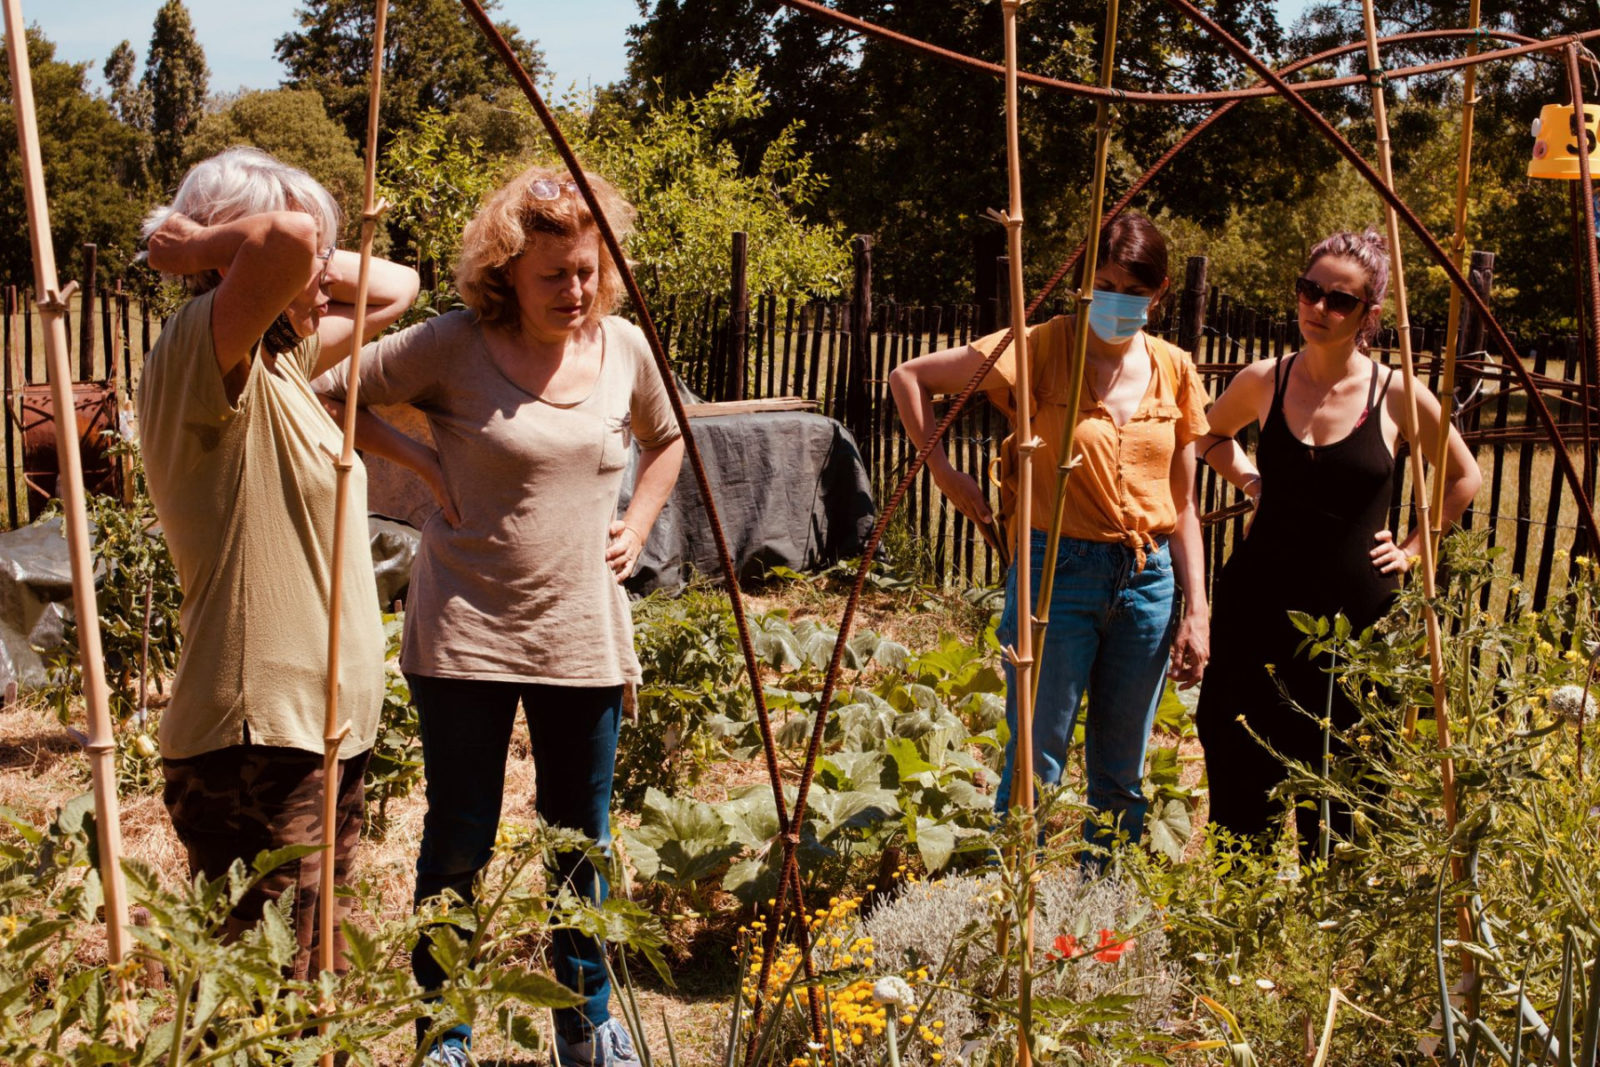 workshop-at-the-transition-town-of-san-lazzaro-and-visit-to-the-school-of-permaculture